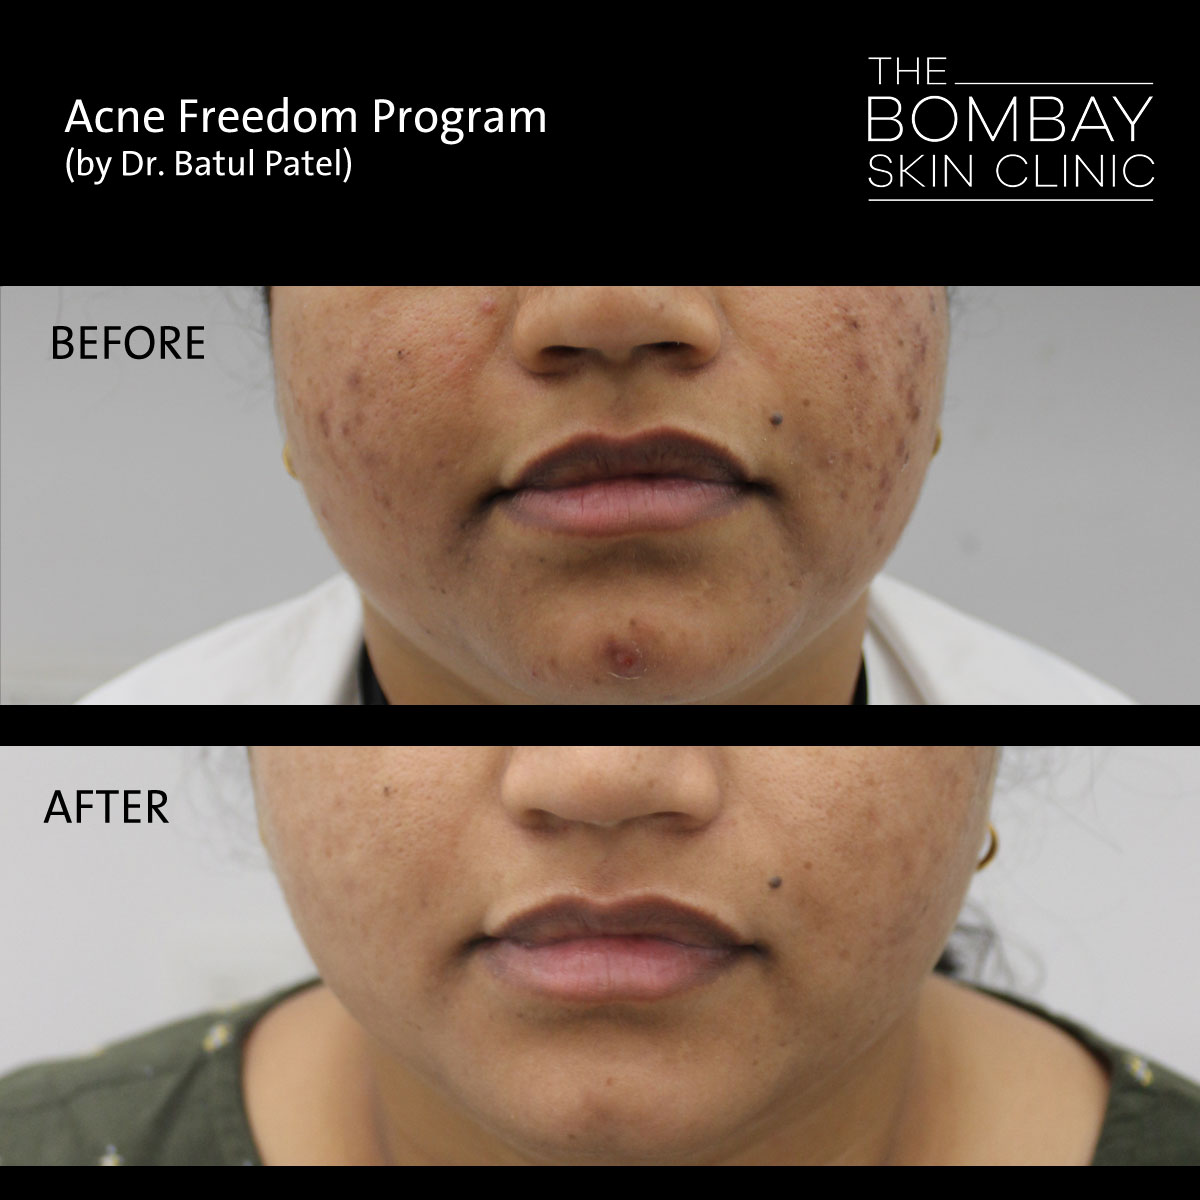 Acne Treatment Before After 01